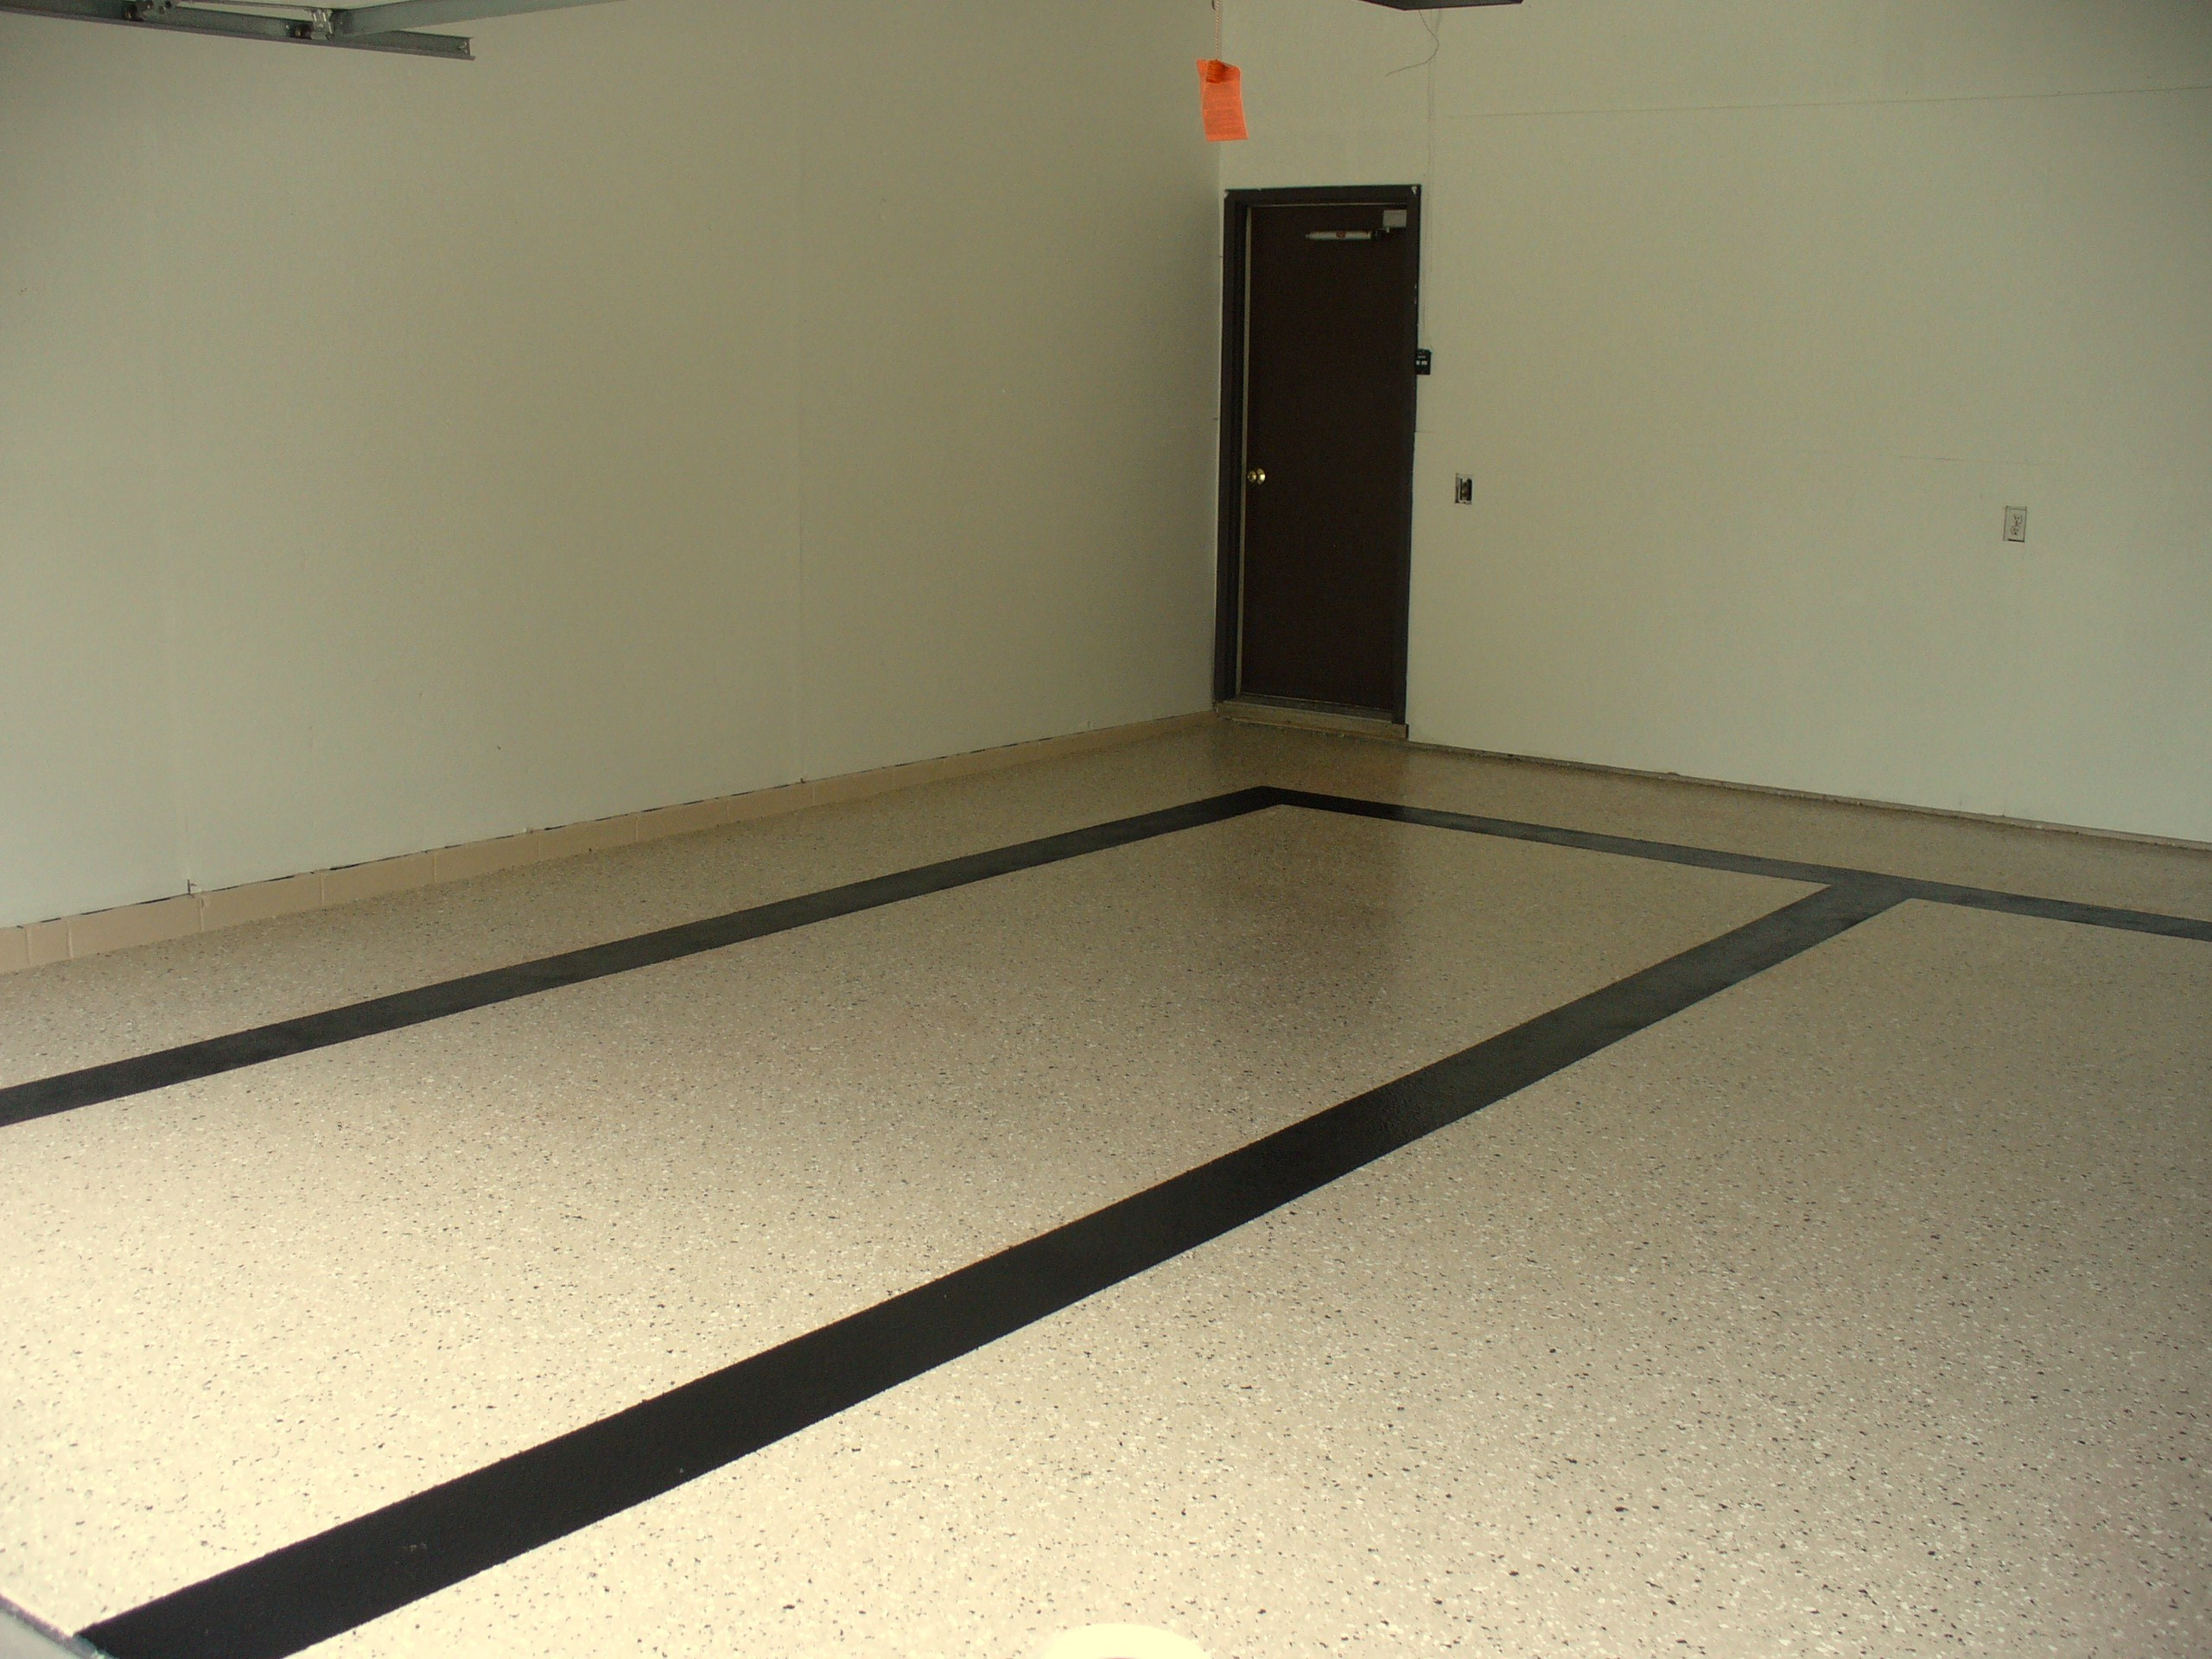 Flordek Garage Floor Coatings And Industrial Flooring